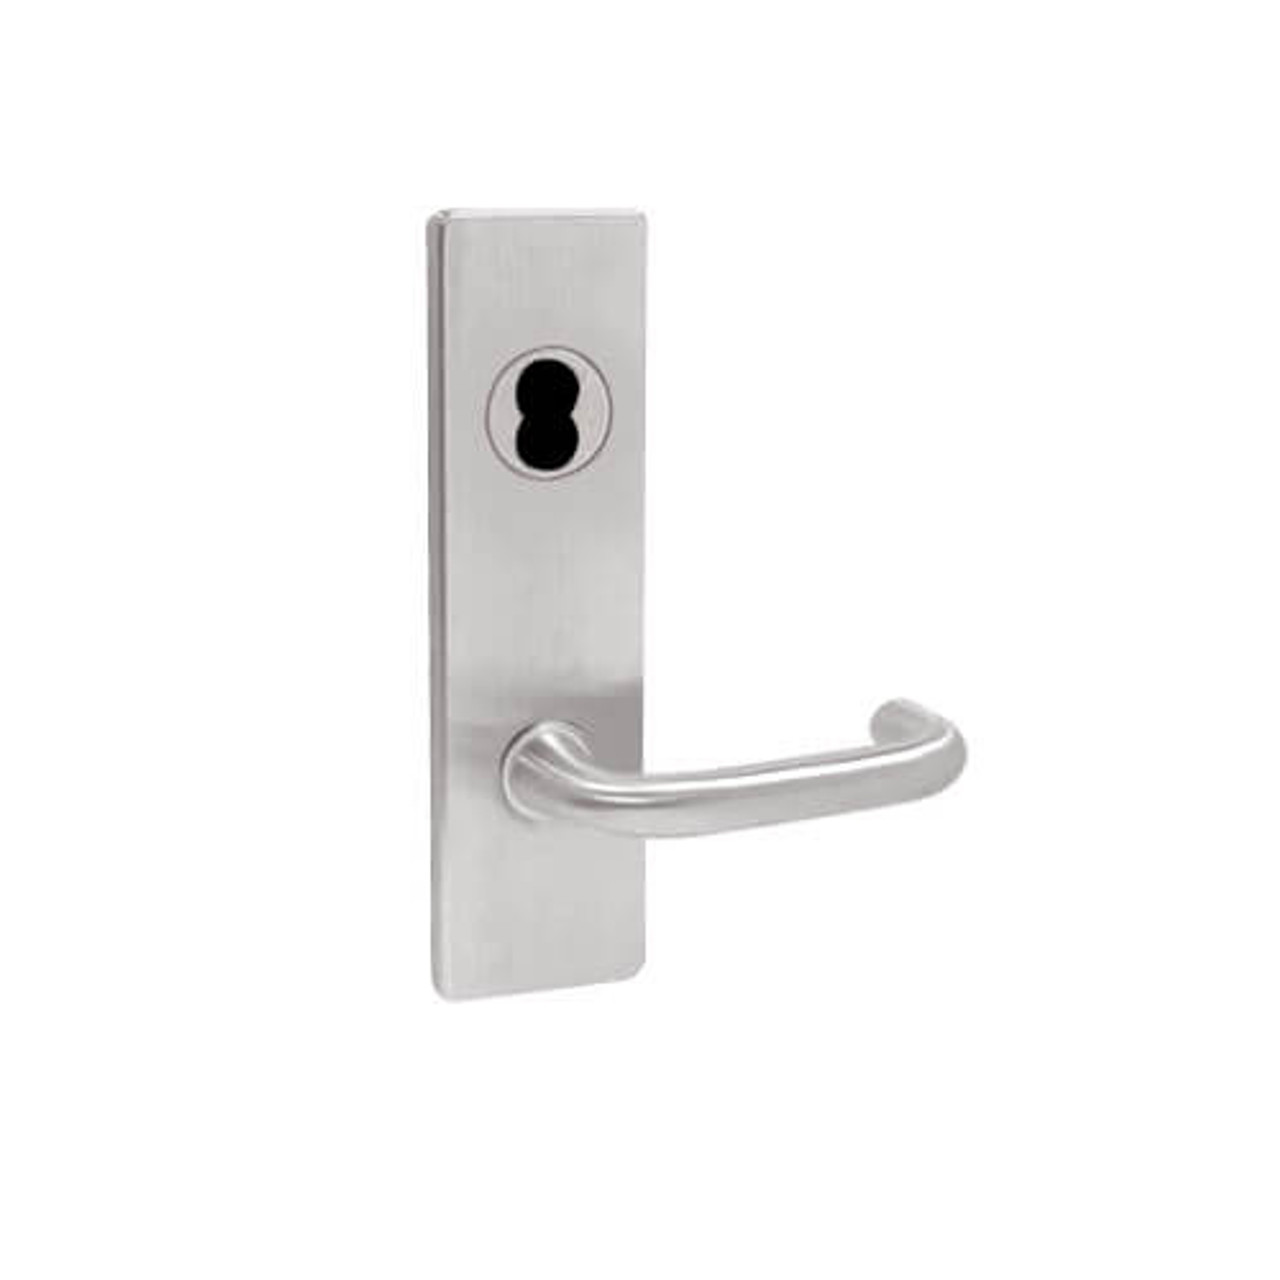 MA441BD-SN-630 Falcon Mortise Locks MA Series Classroom Security SN Lever with Escutcheon Style in Satin Stainless Finish